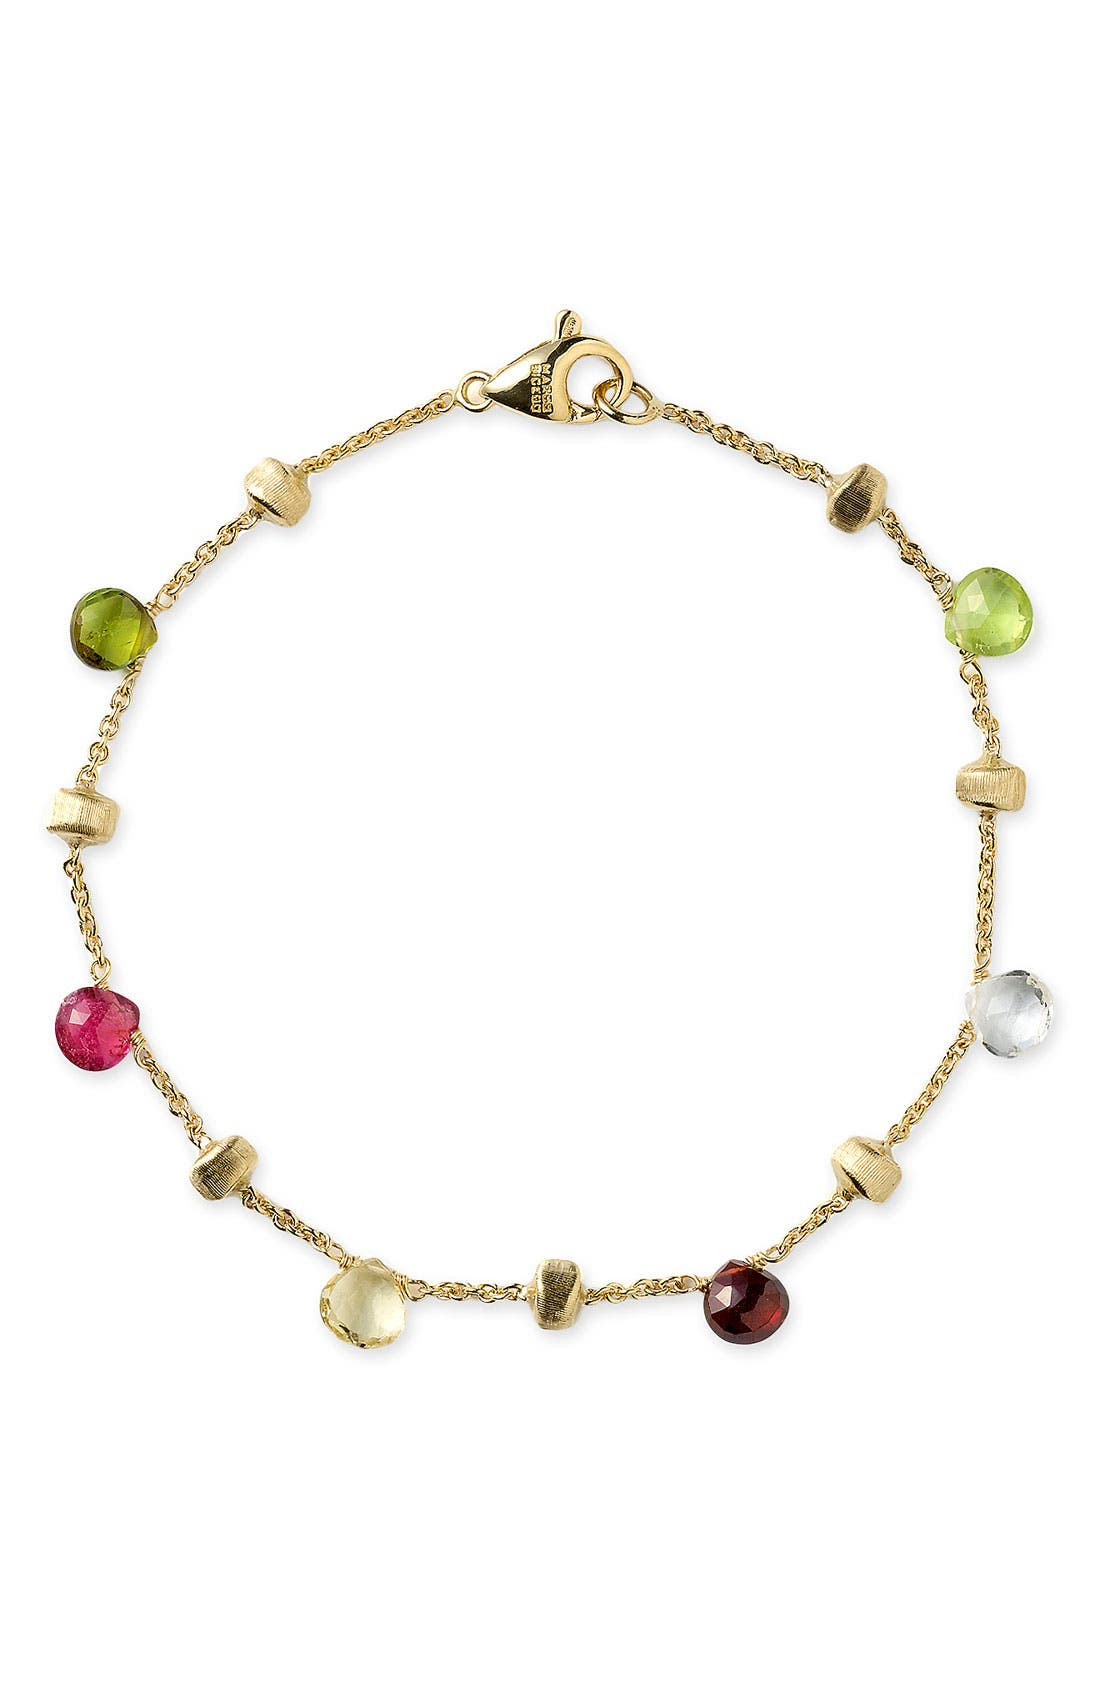 Alternate Image 1 Selected - Marco Bicego 'Paradise' Single Strand Bracelet